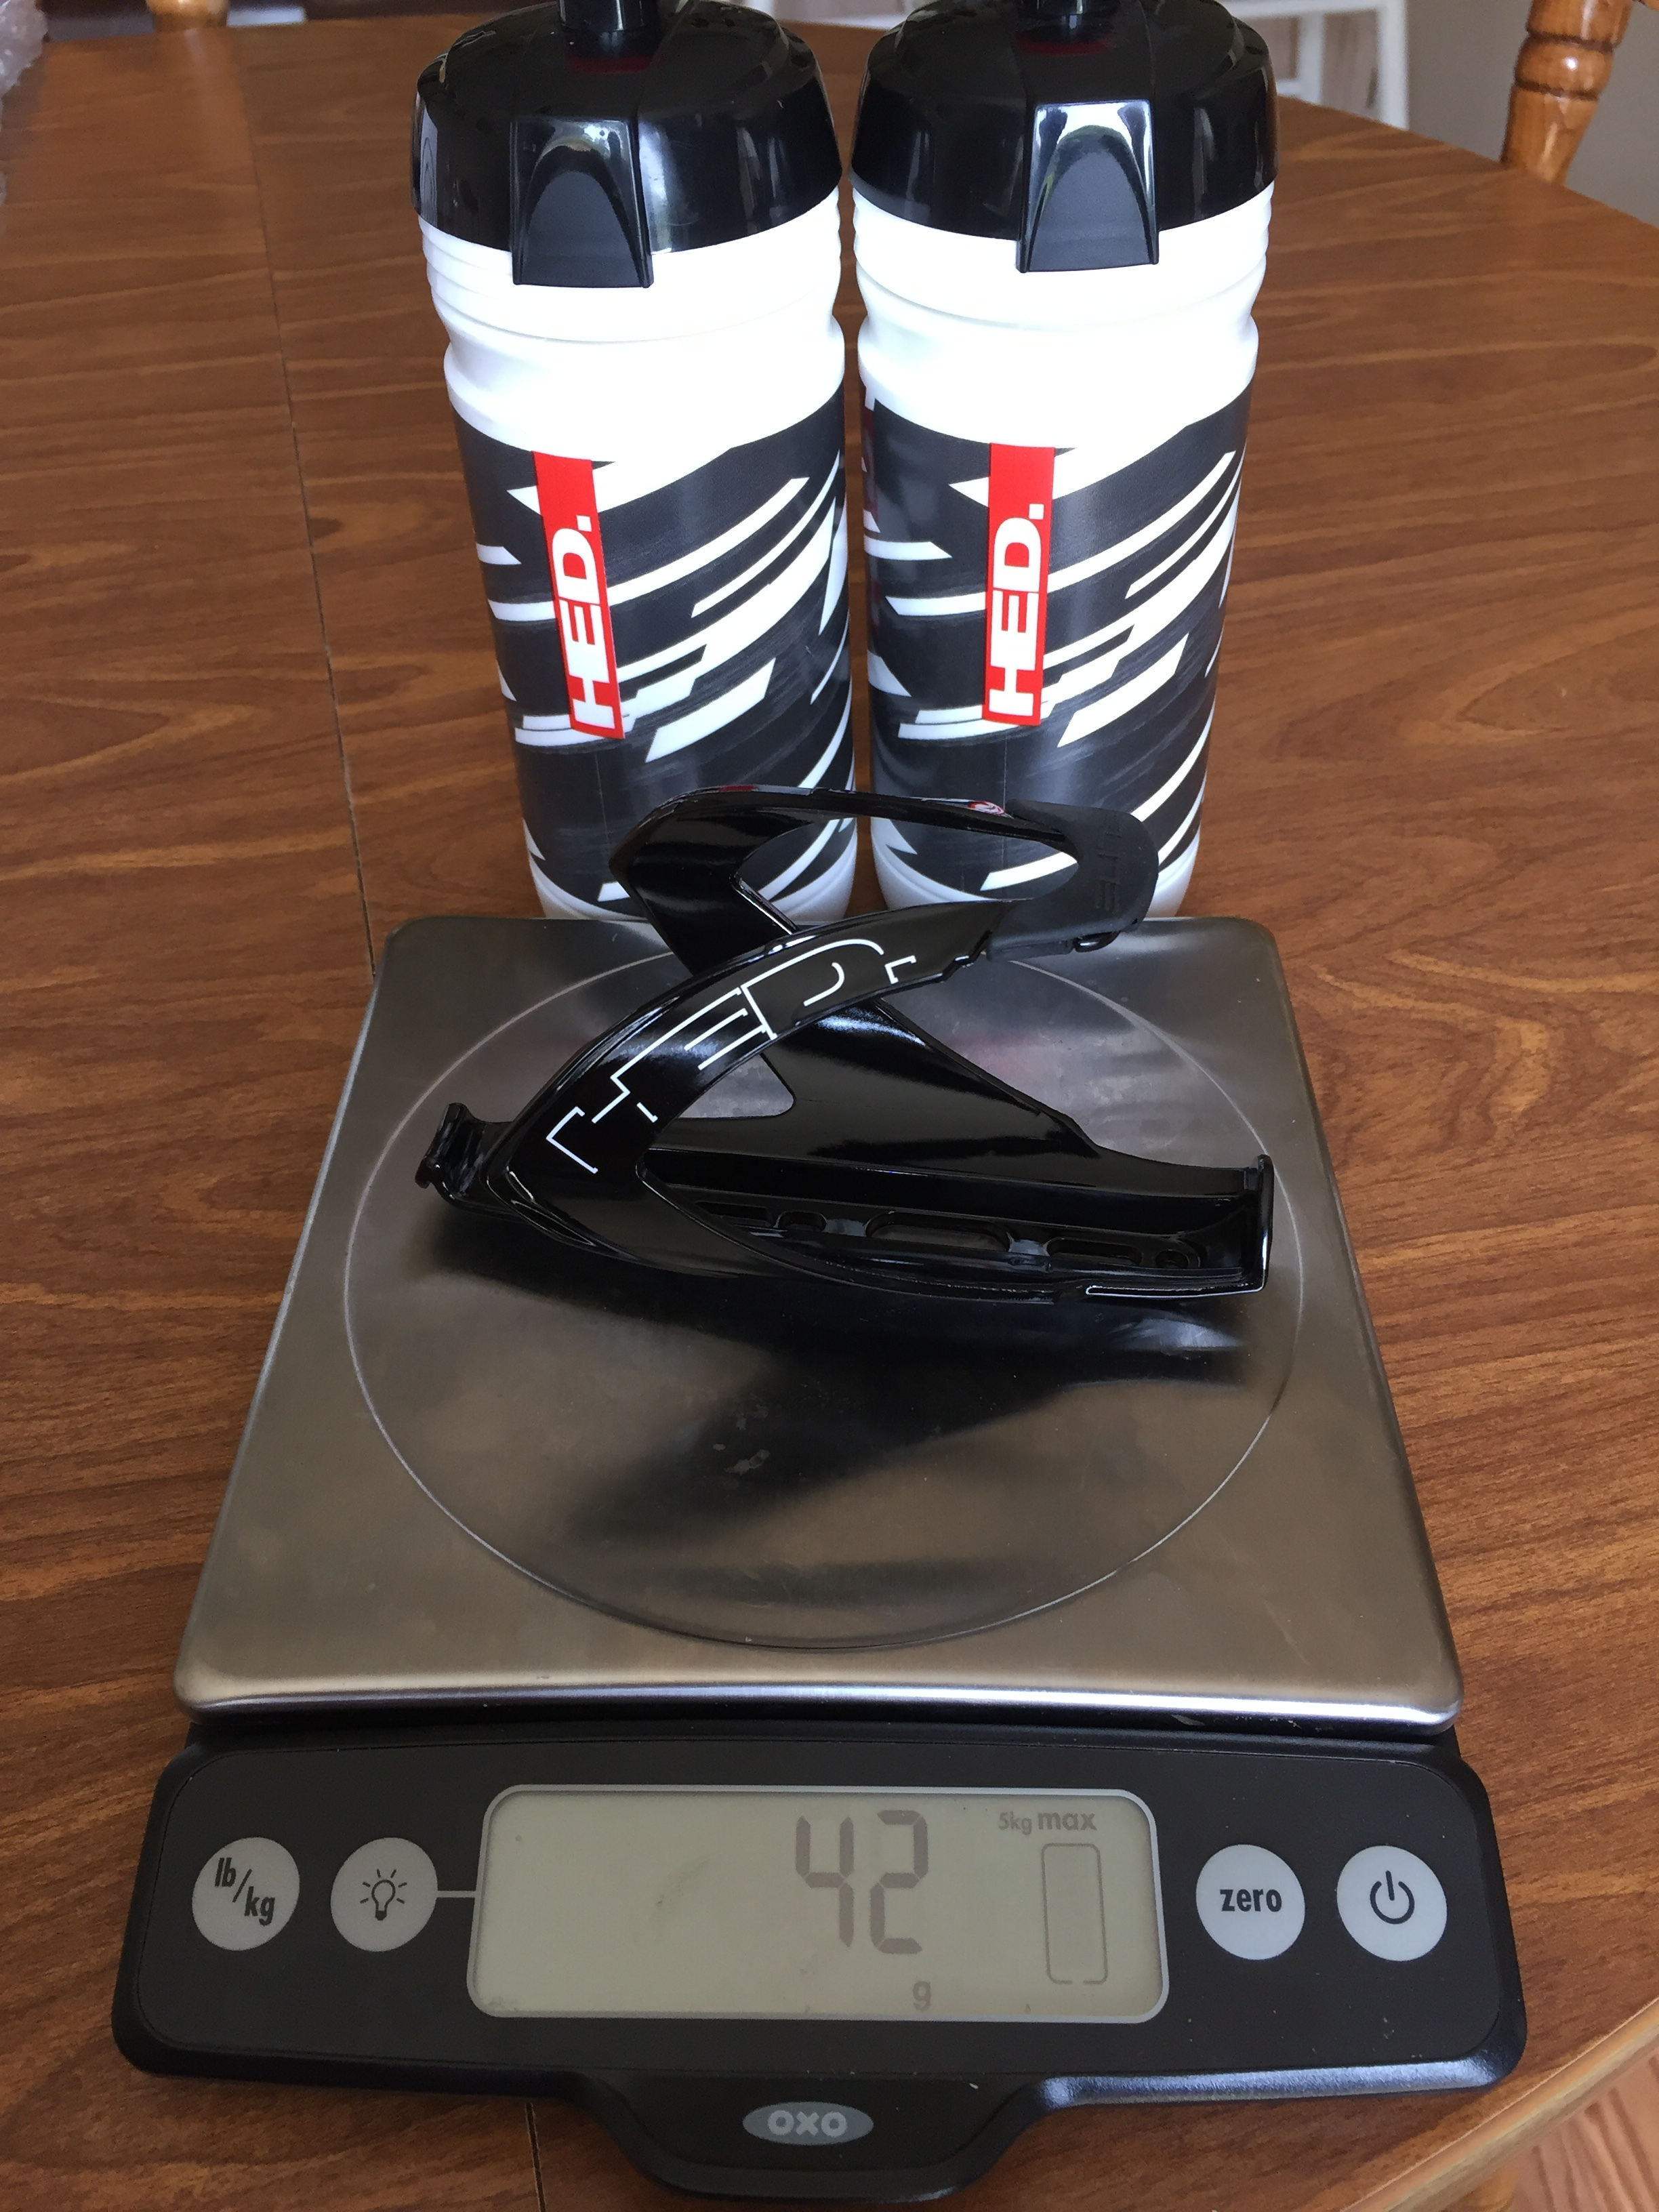 Not a bad weight for vinyl water bottle cages.